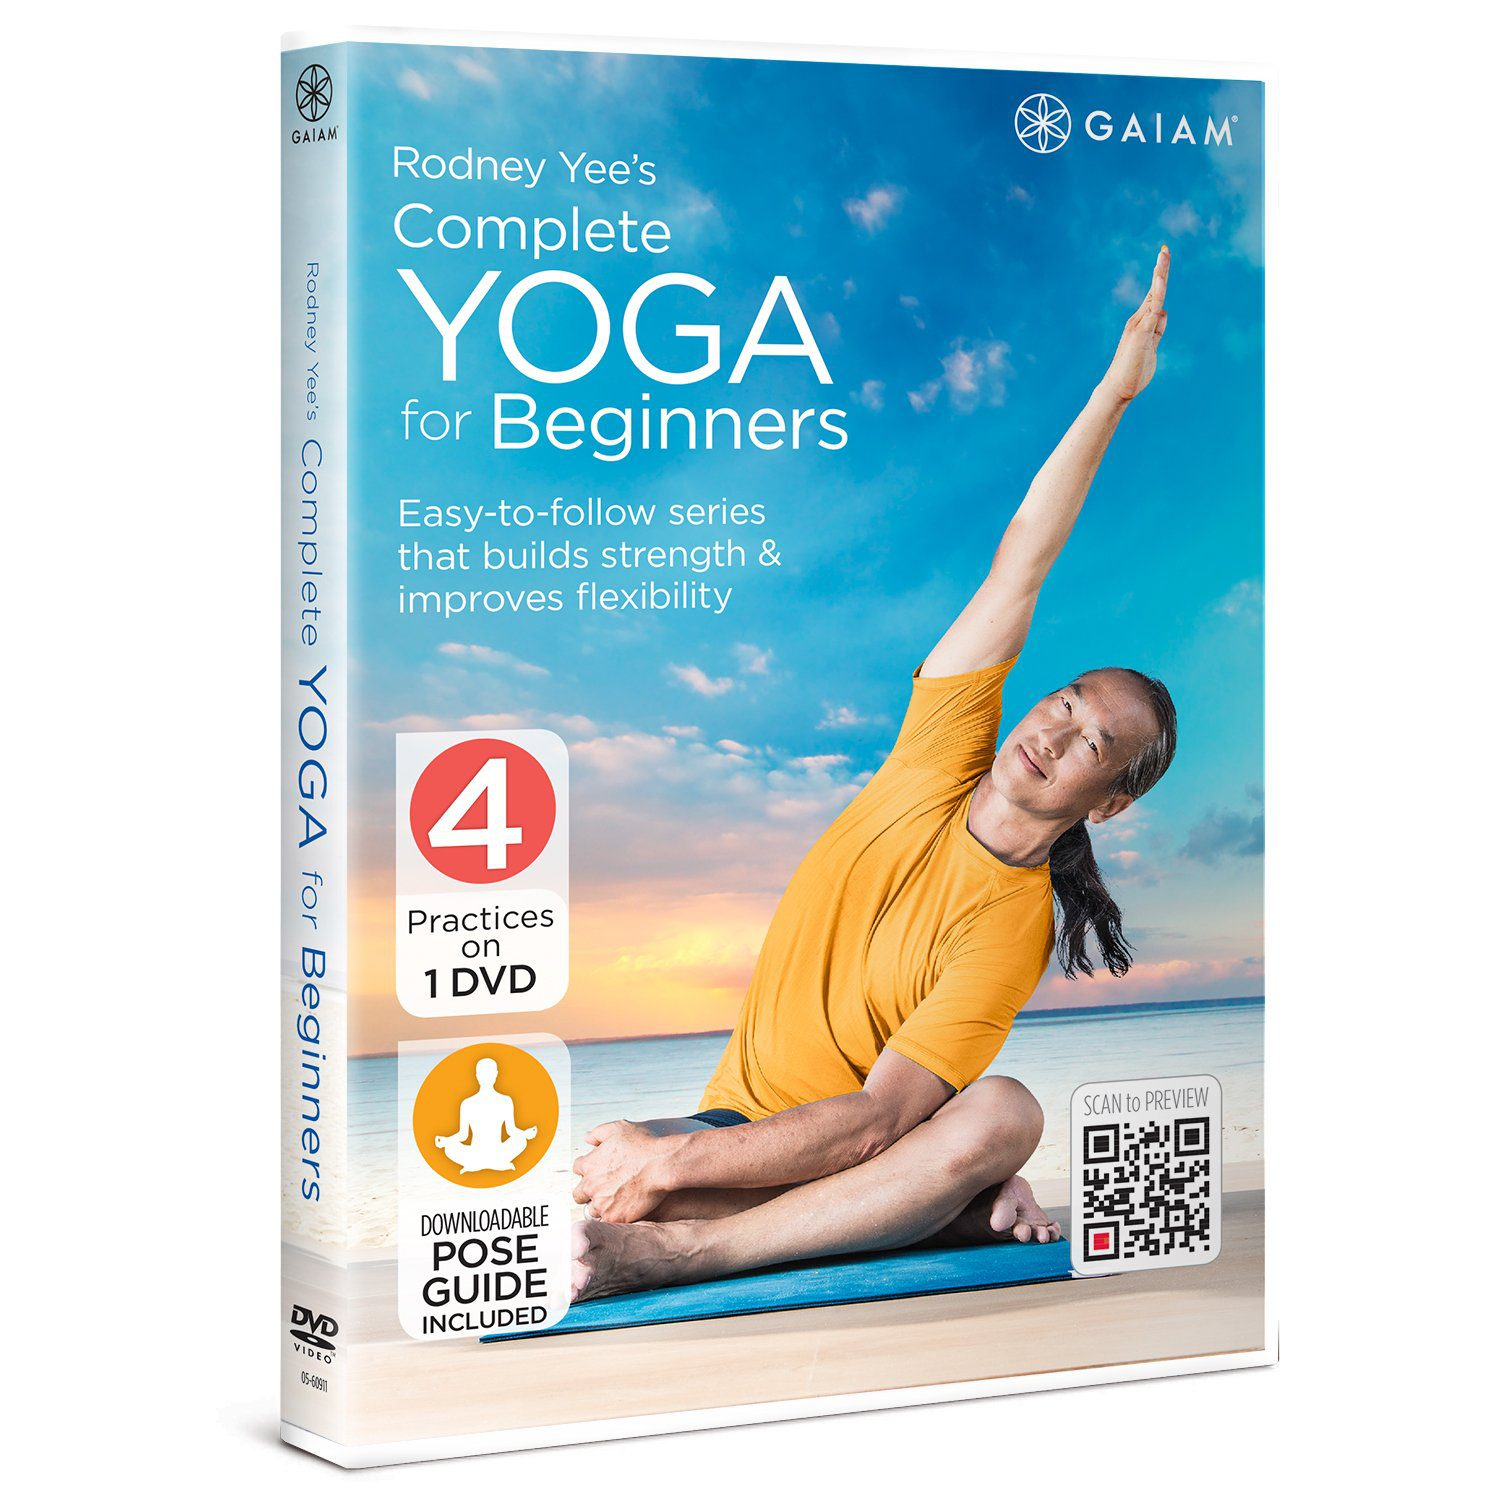 Rodney Yee's Complete Yoga for Beginners | Best Yoga for Beginners DVDs